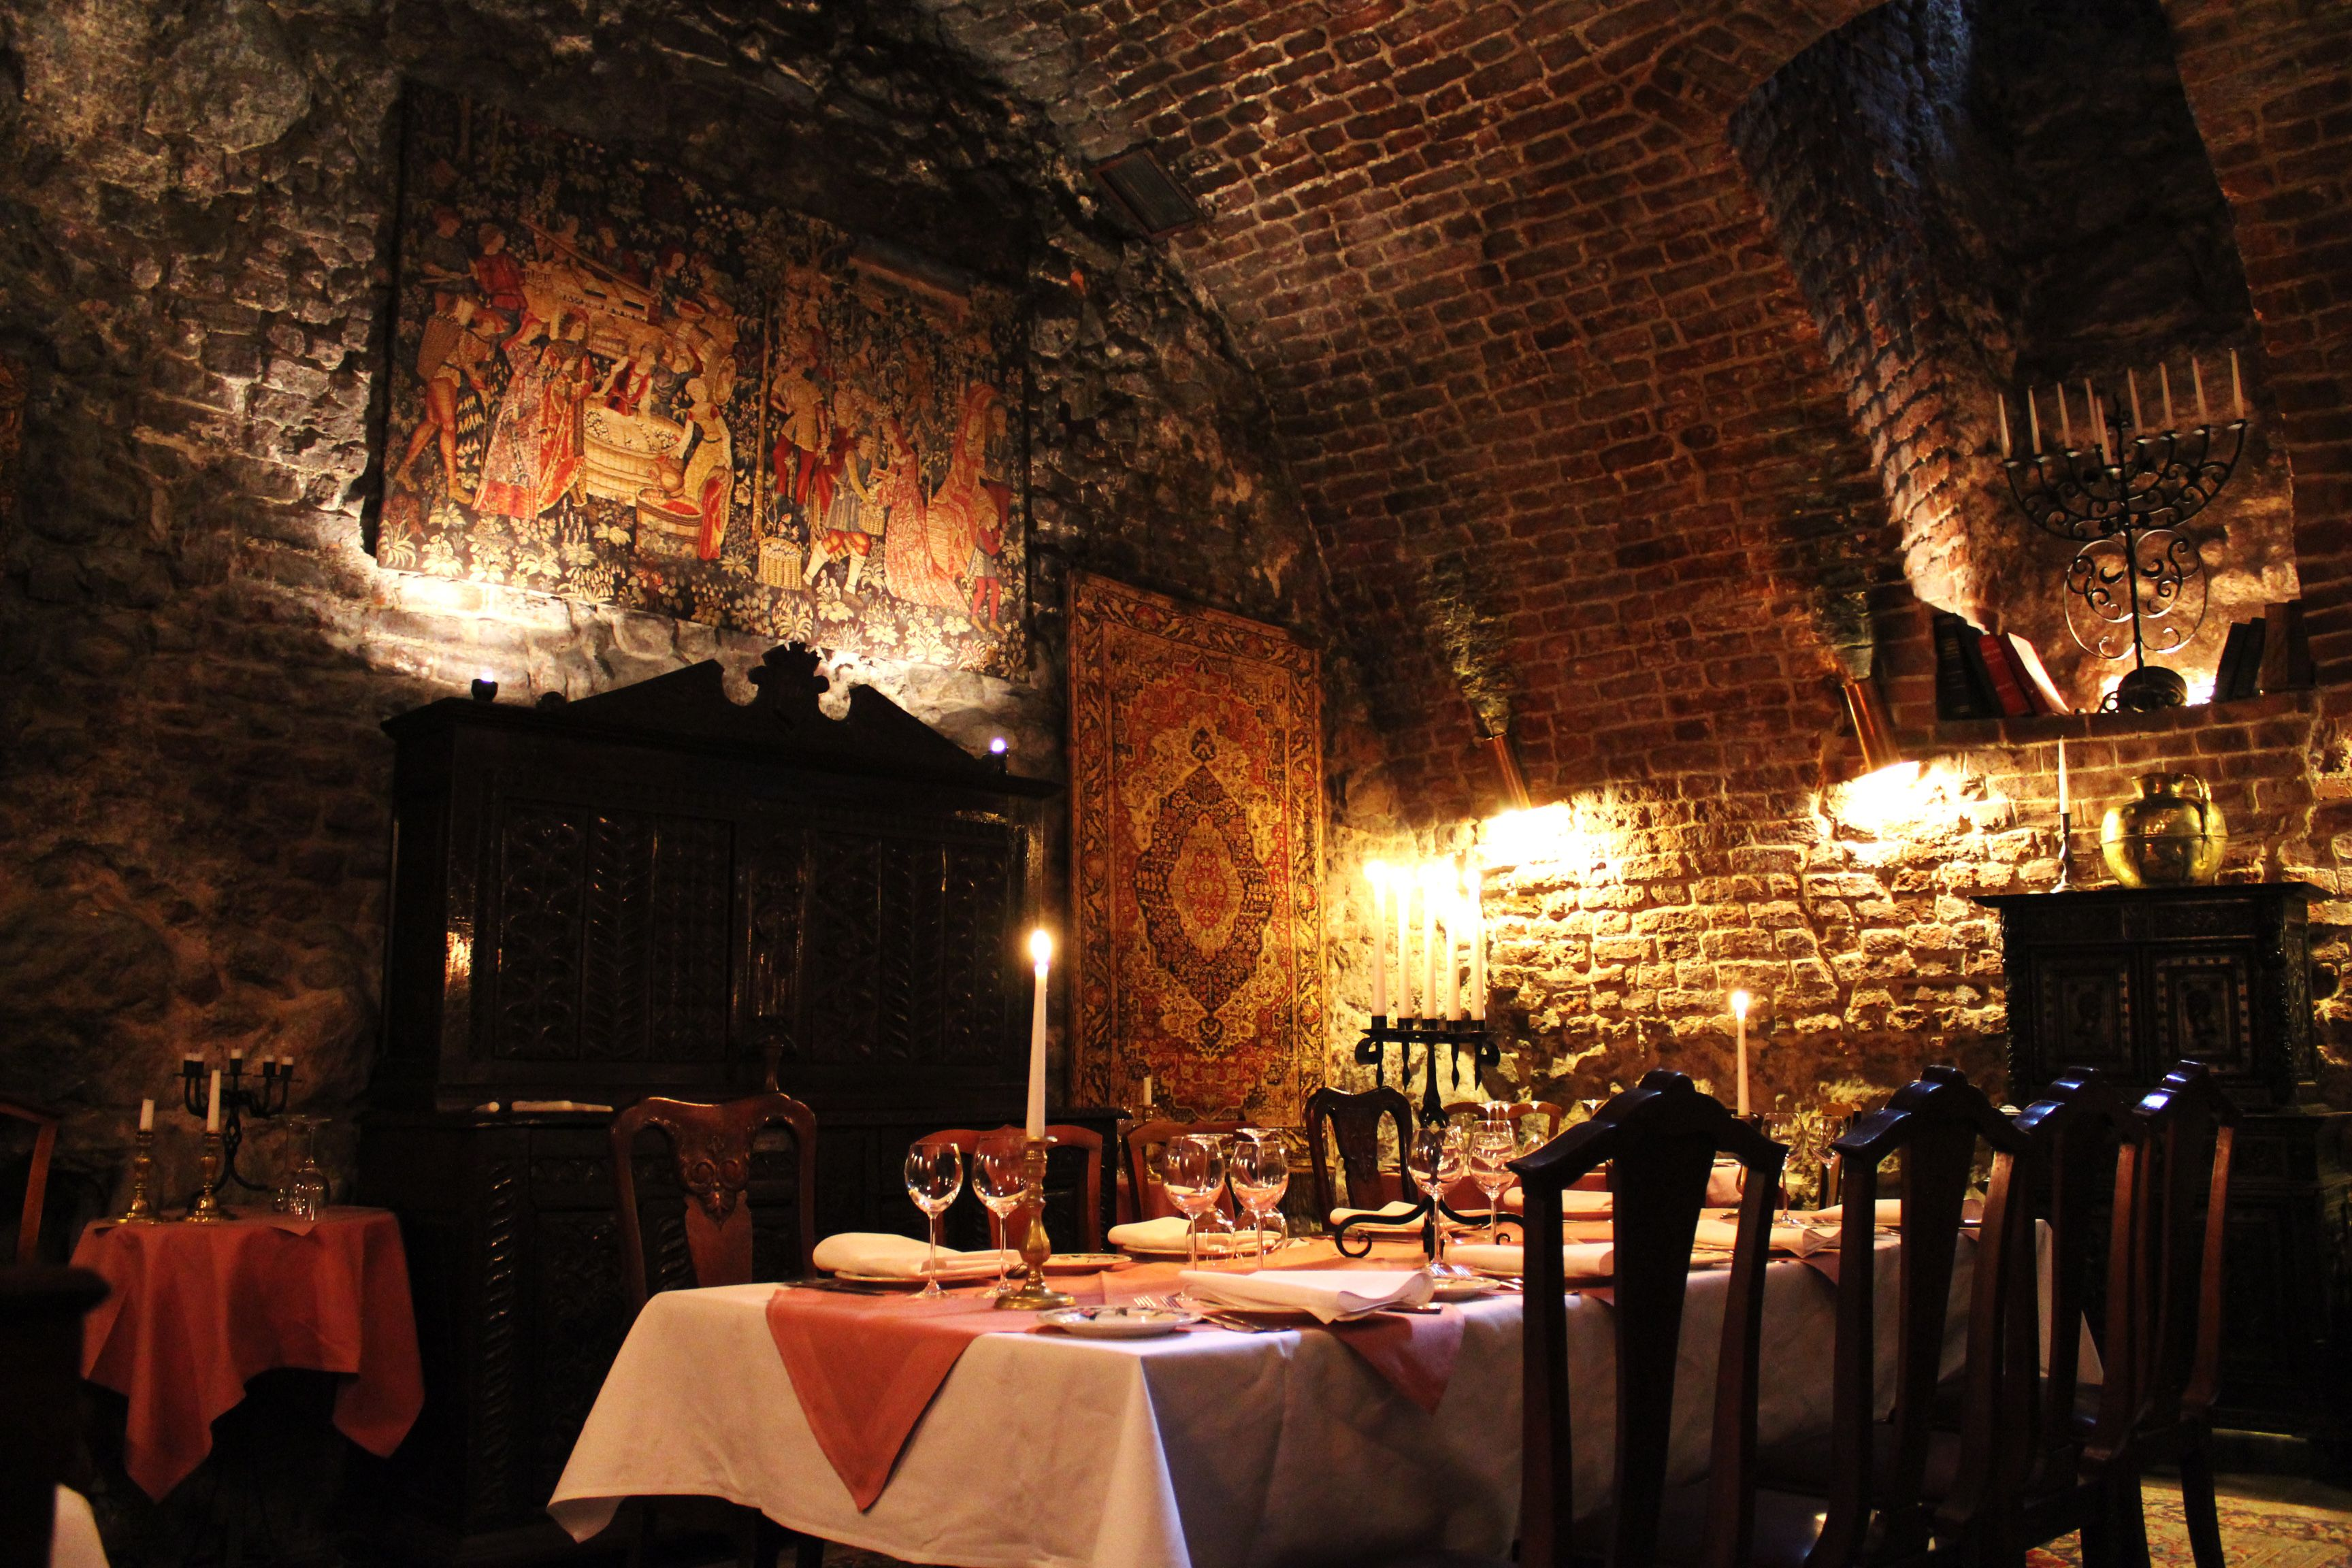 Medieval Dining Room Medieval house #7 outside